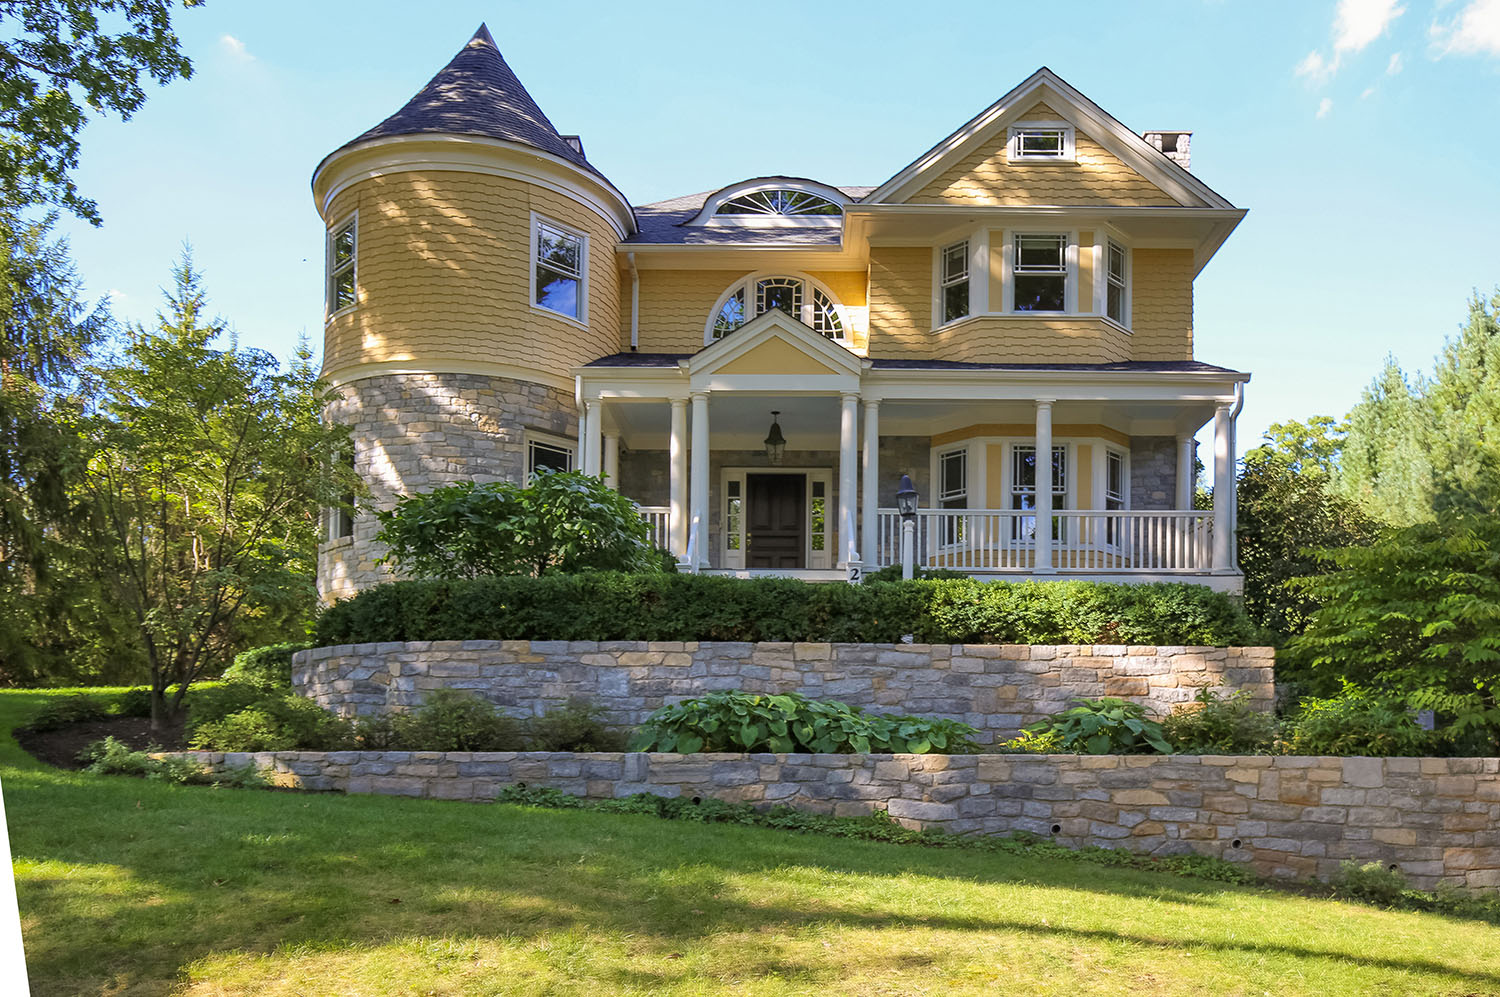 2 Whittredge Road, Summit NJ